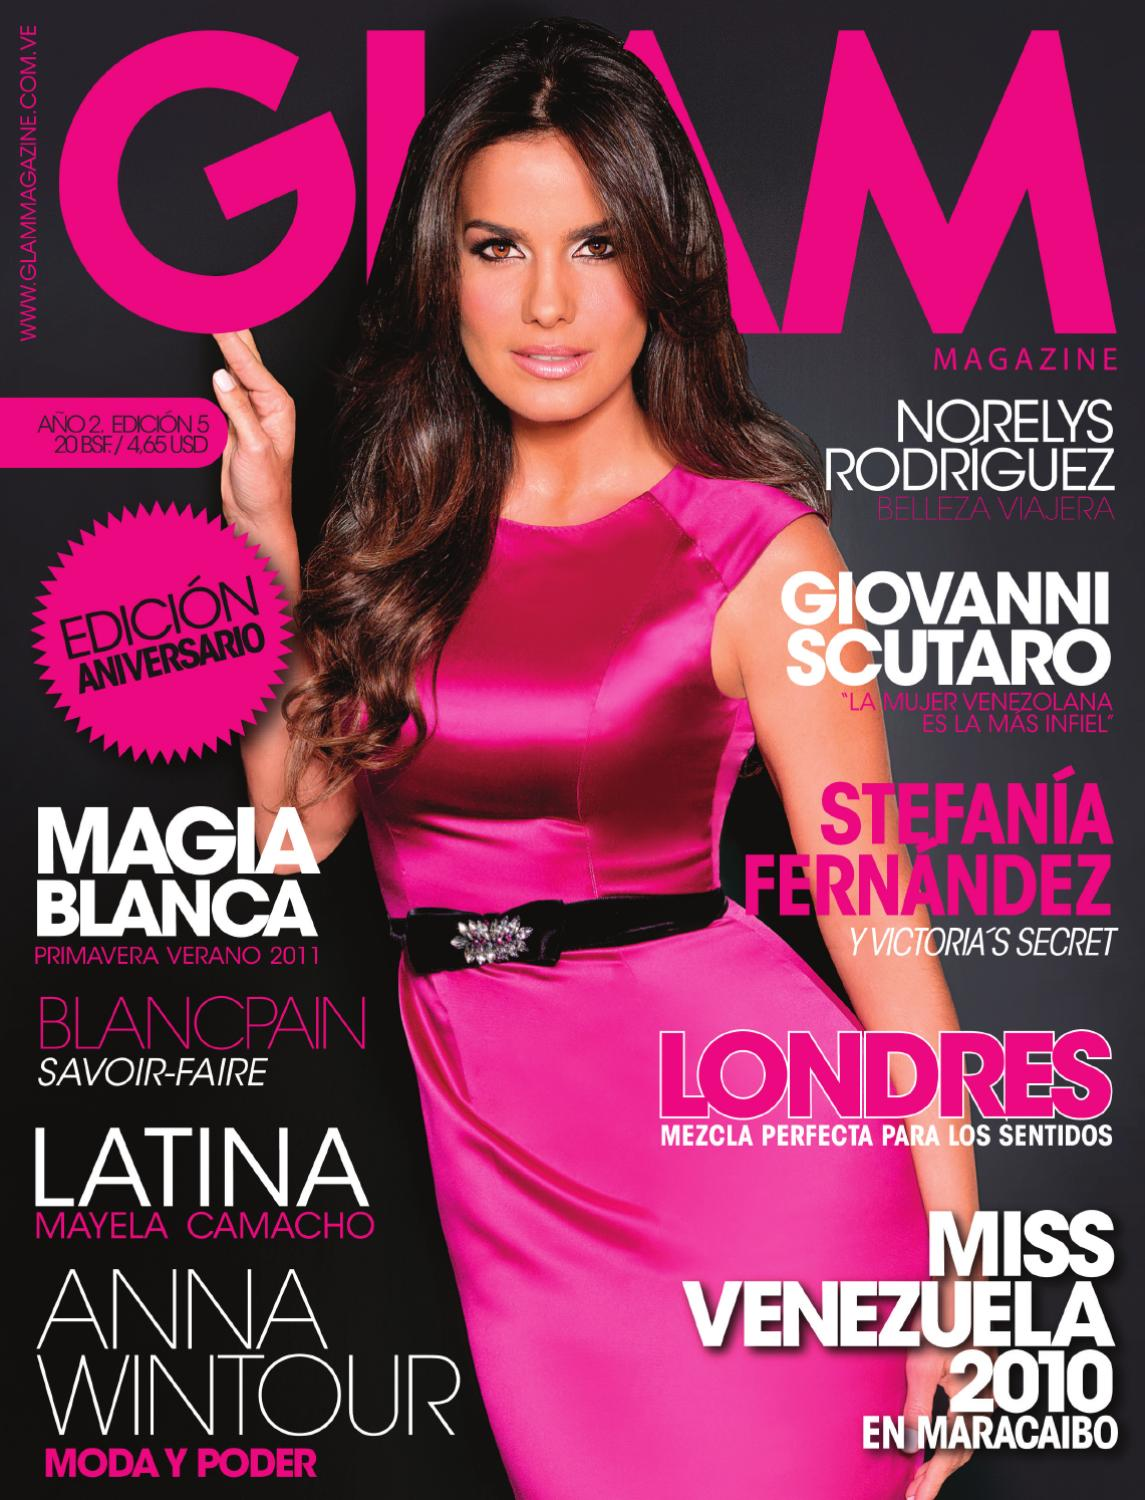 GLAM 05 - EDICIÓN ANIVERSARIO by GRUPO EDITORIAL GLAM, C.A. - issuu